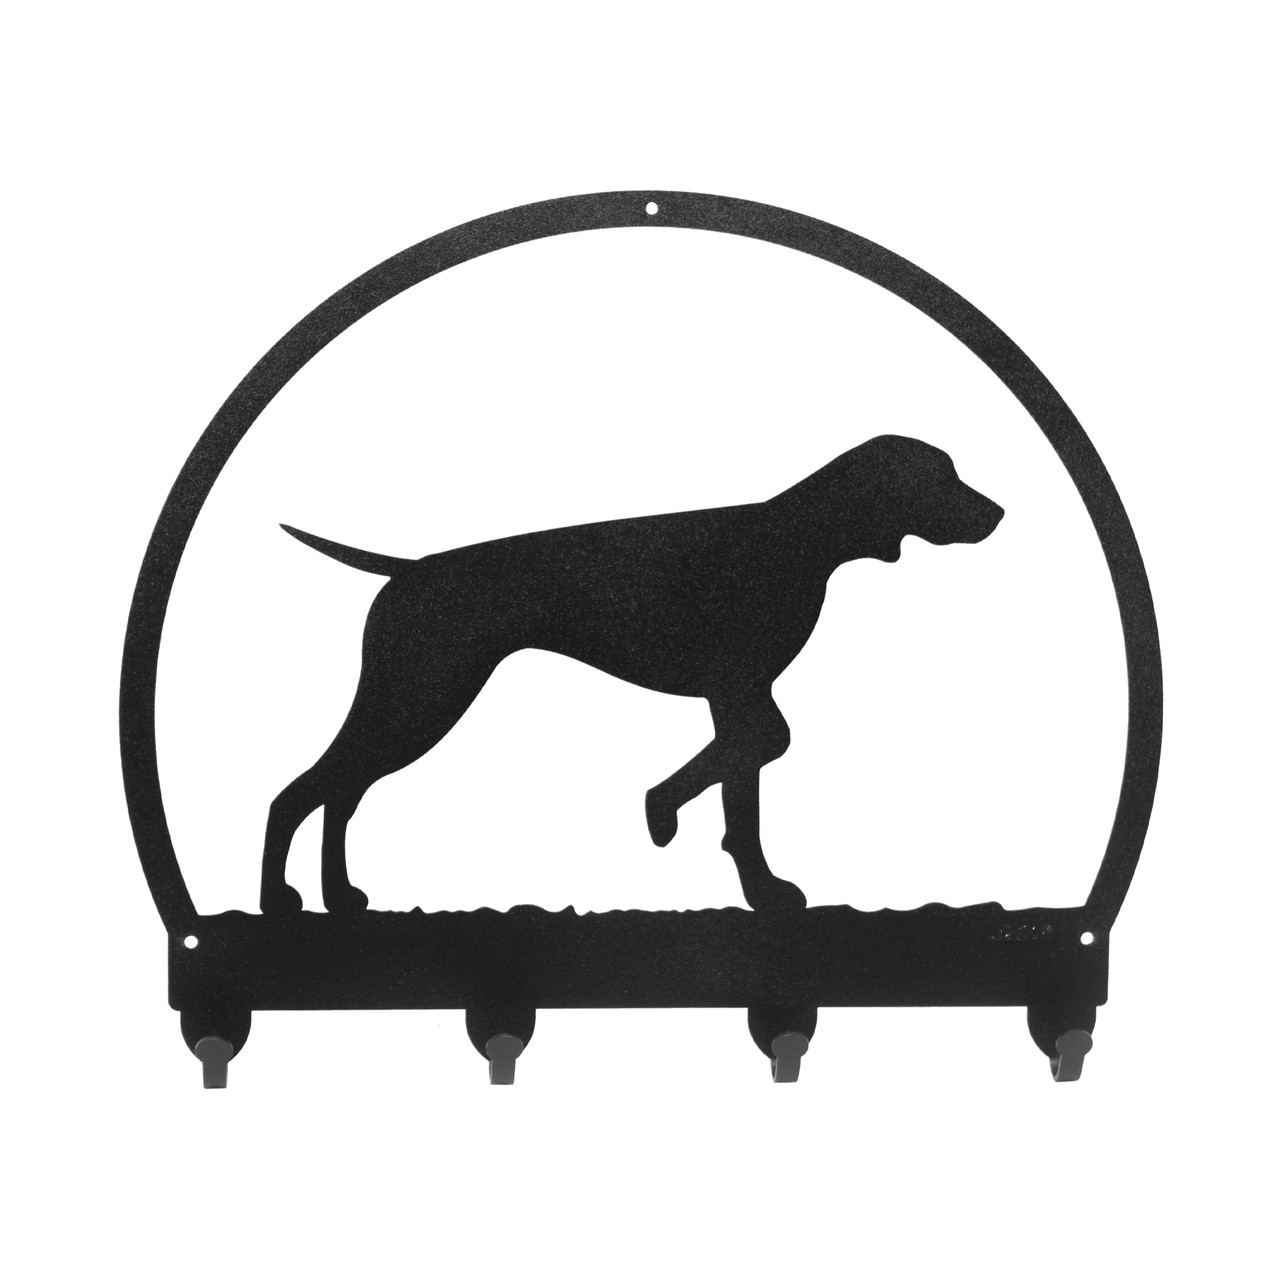 SWEN Products AIREDALE Dog Black Metal Key Chain Holder Hanger